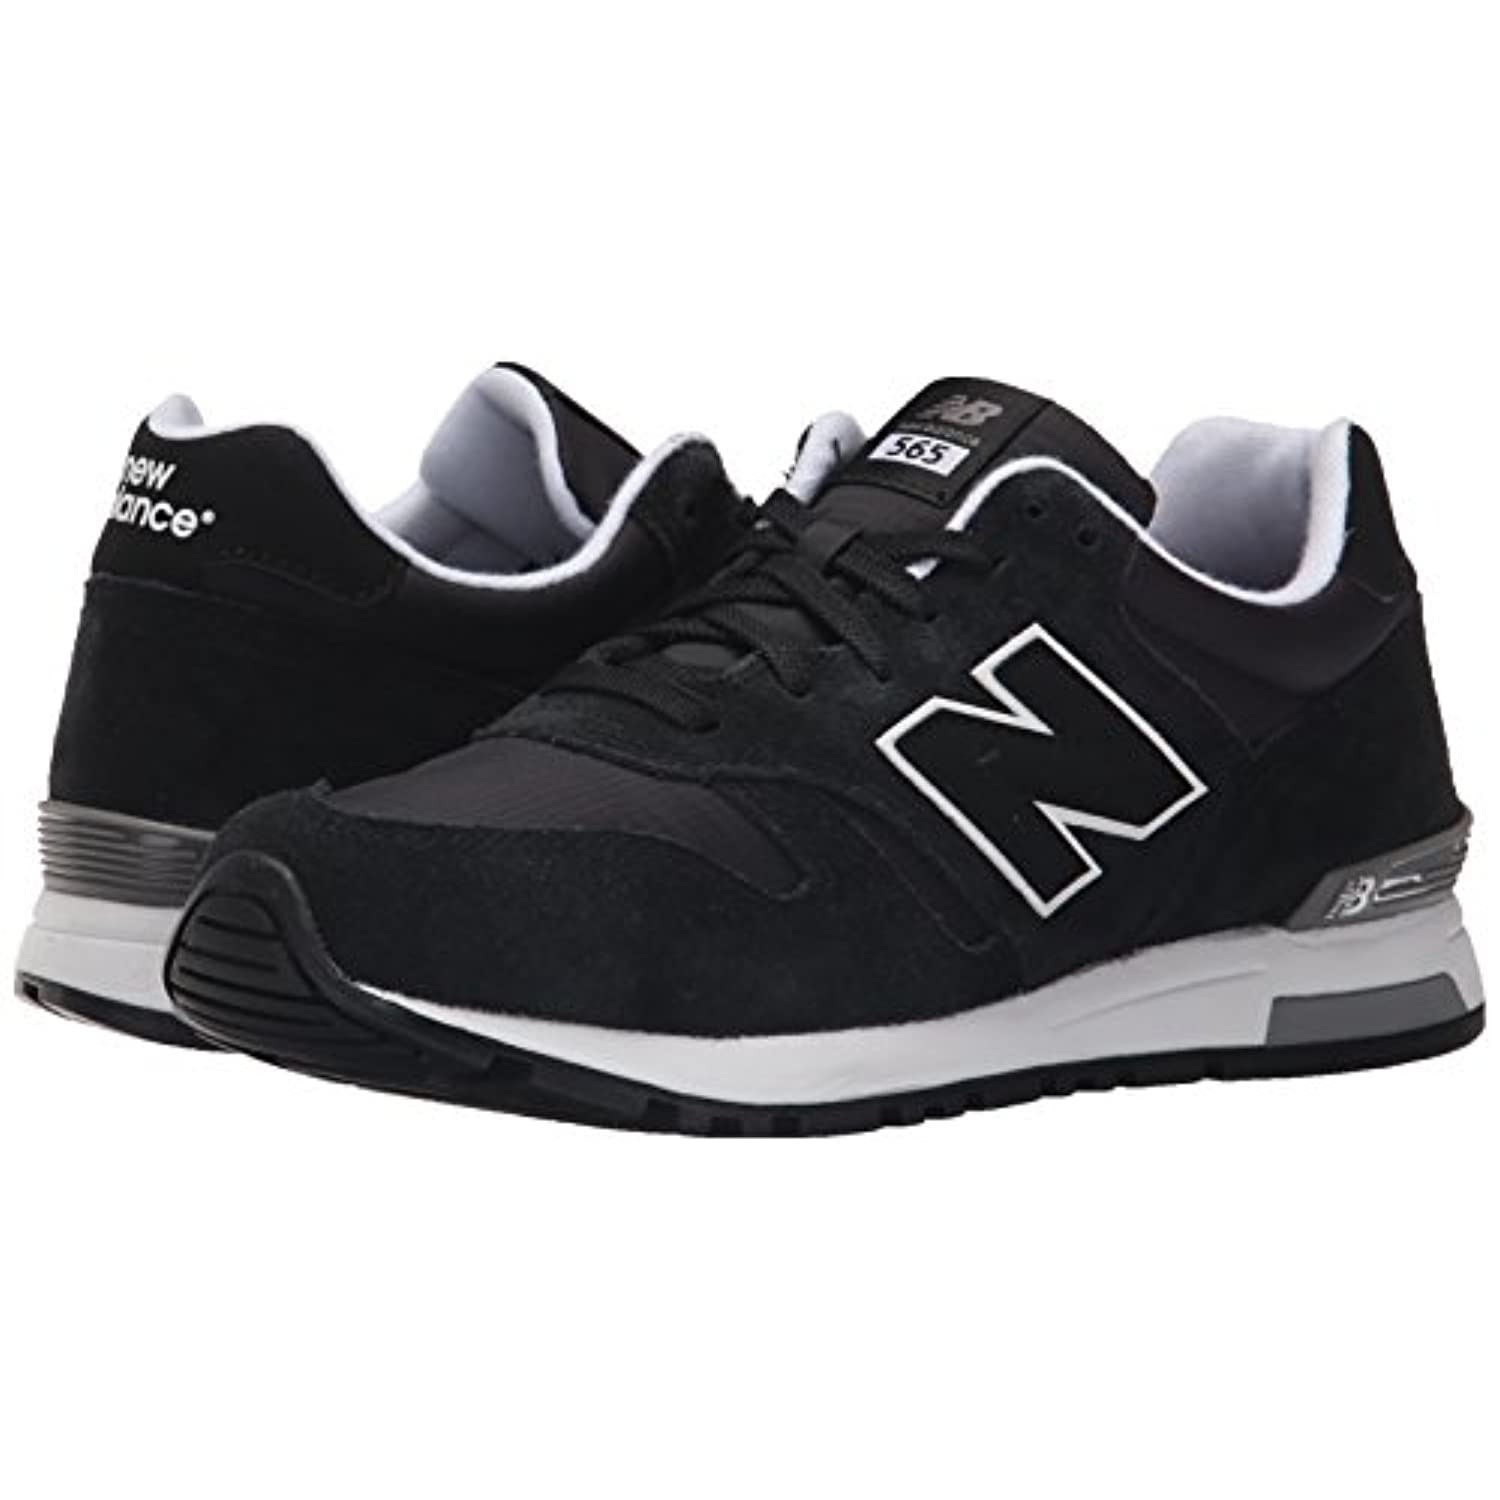 New Balance Men's Ml565 Classic Running Shoe, Black | eBay